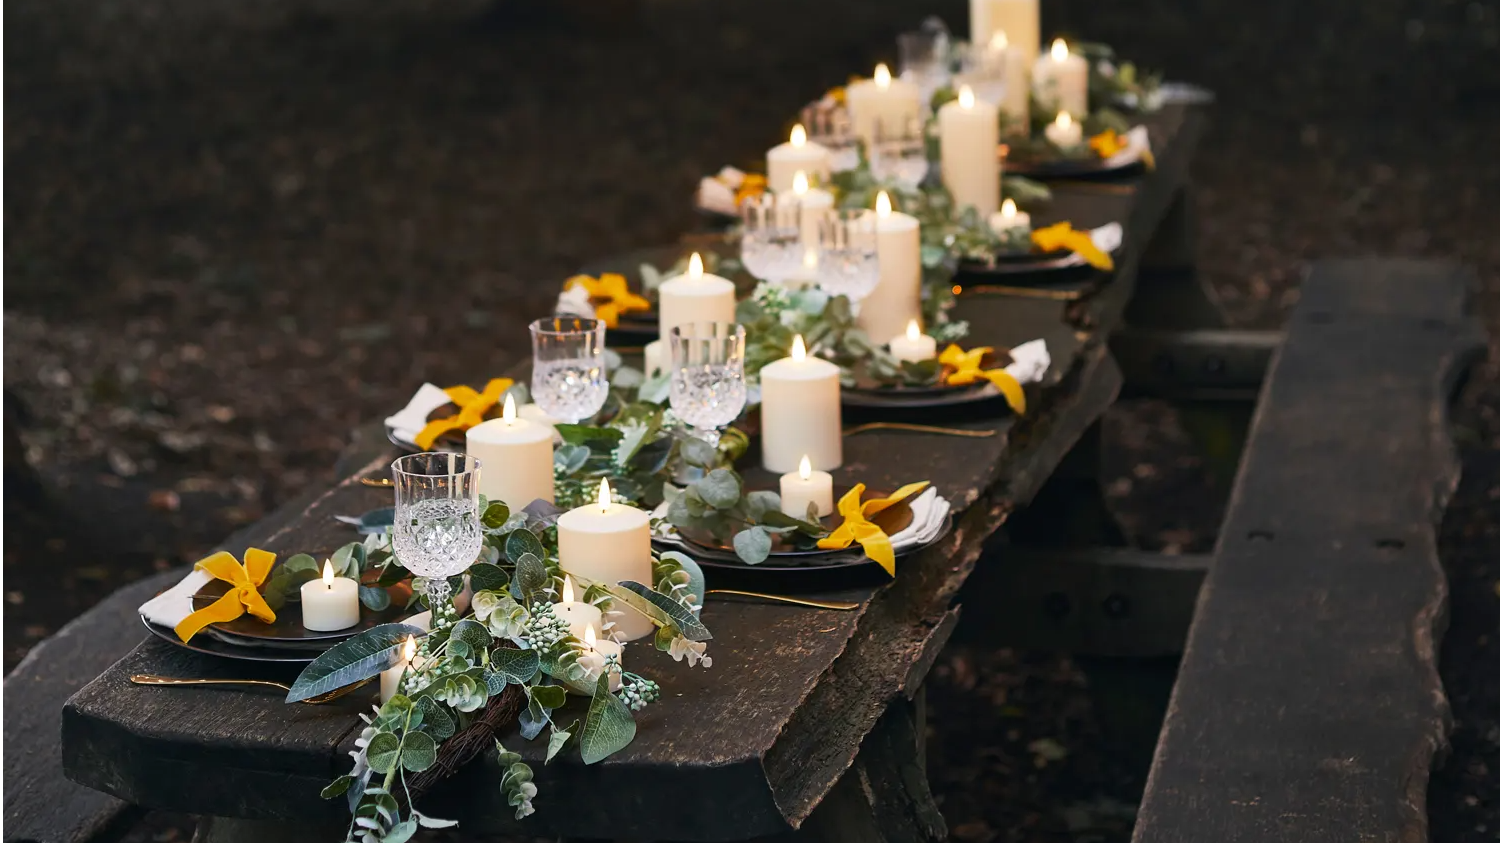 Wedding table with assortment of TruGlow candles and garland styled as part of centrepiece